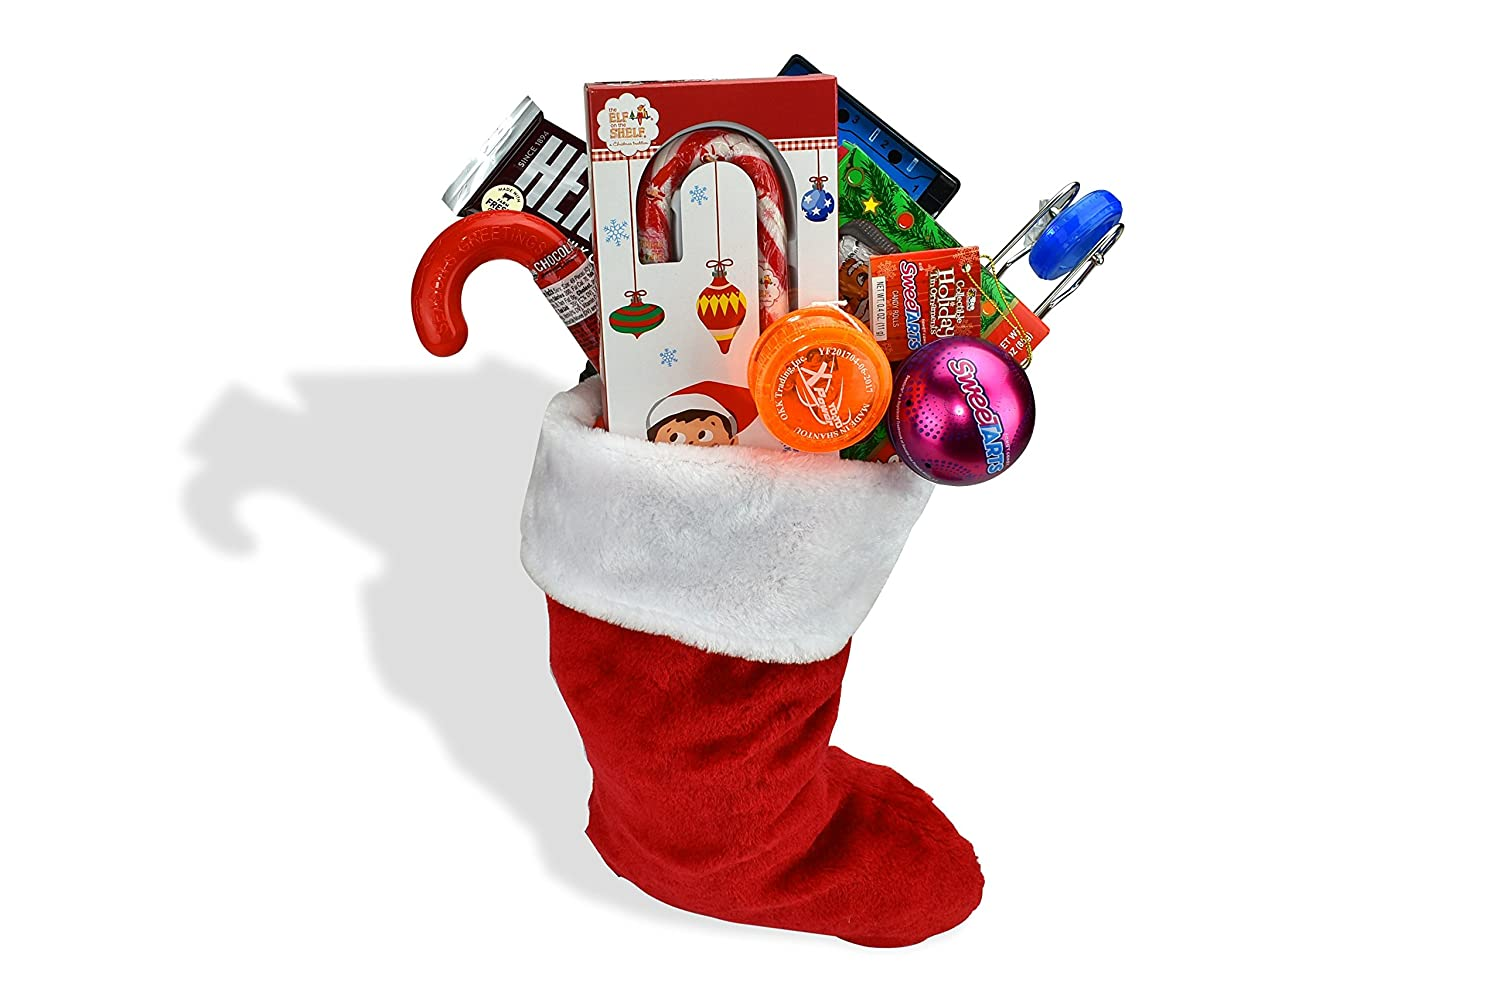 Traditional Holiday Childrens Christmas Stocking Filled With Stocking Stuffers Kids Games Hersheys Candy Sweettarts and Nerds